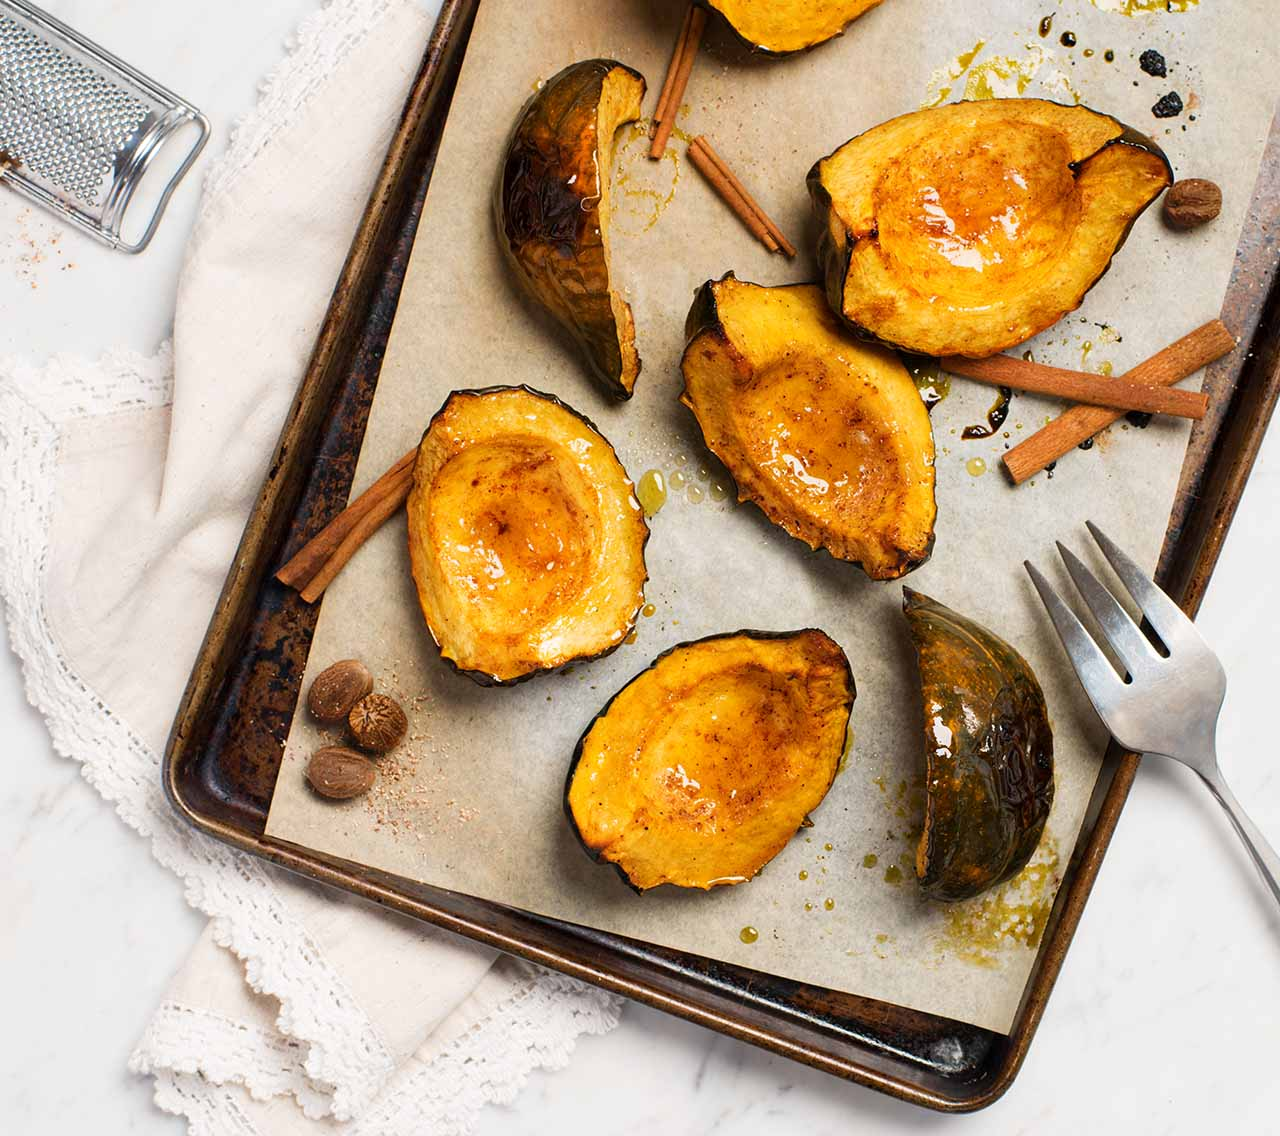 Roasted Squash with Sugar & Spice